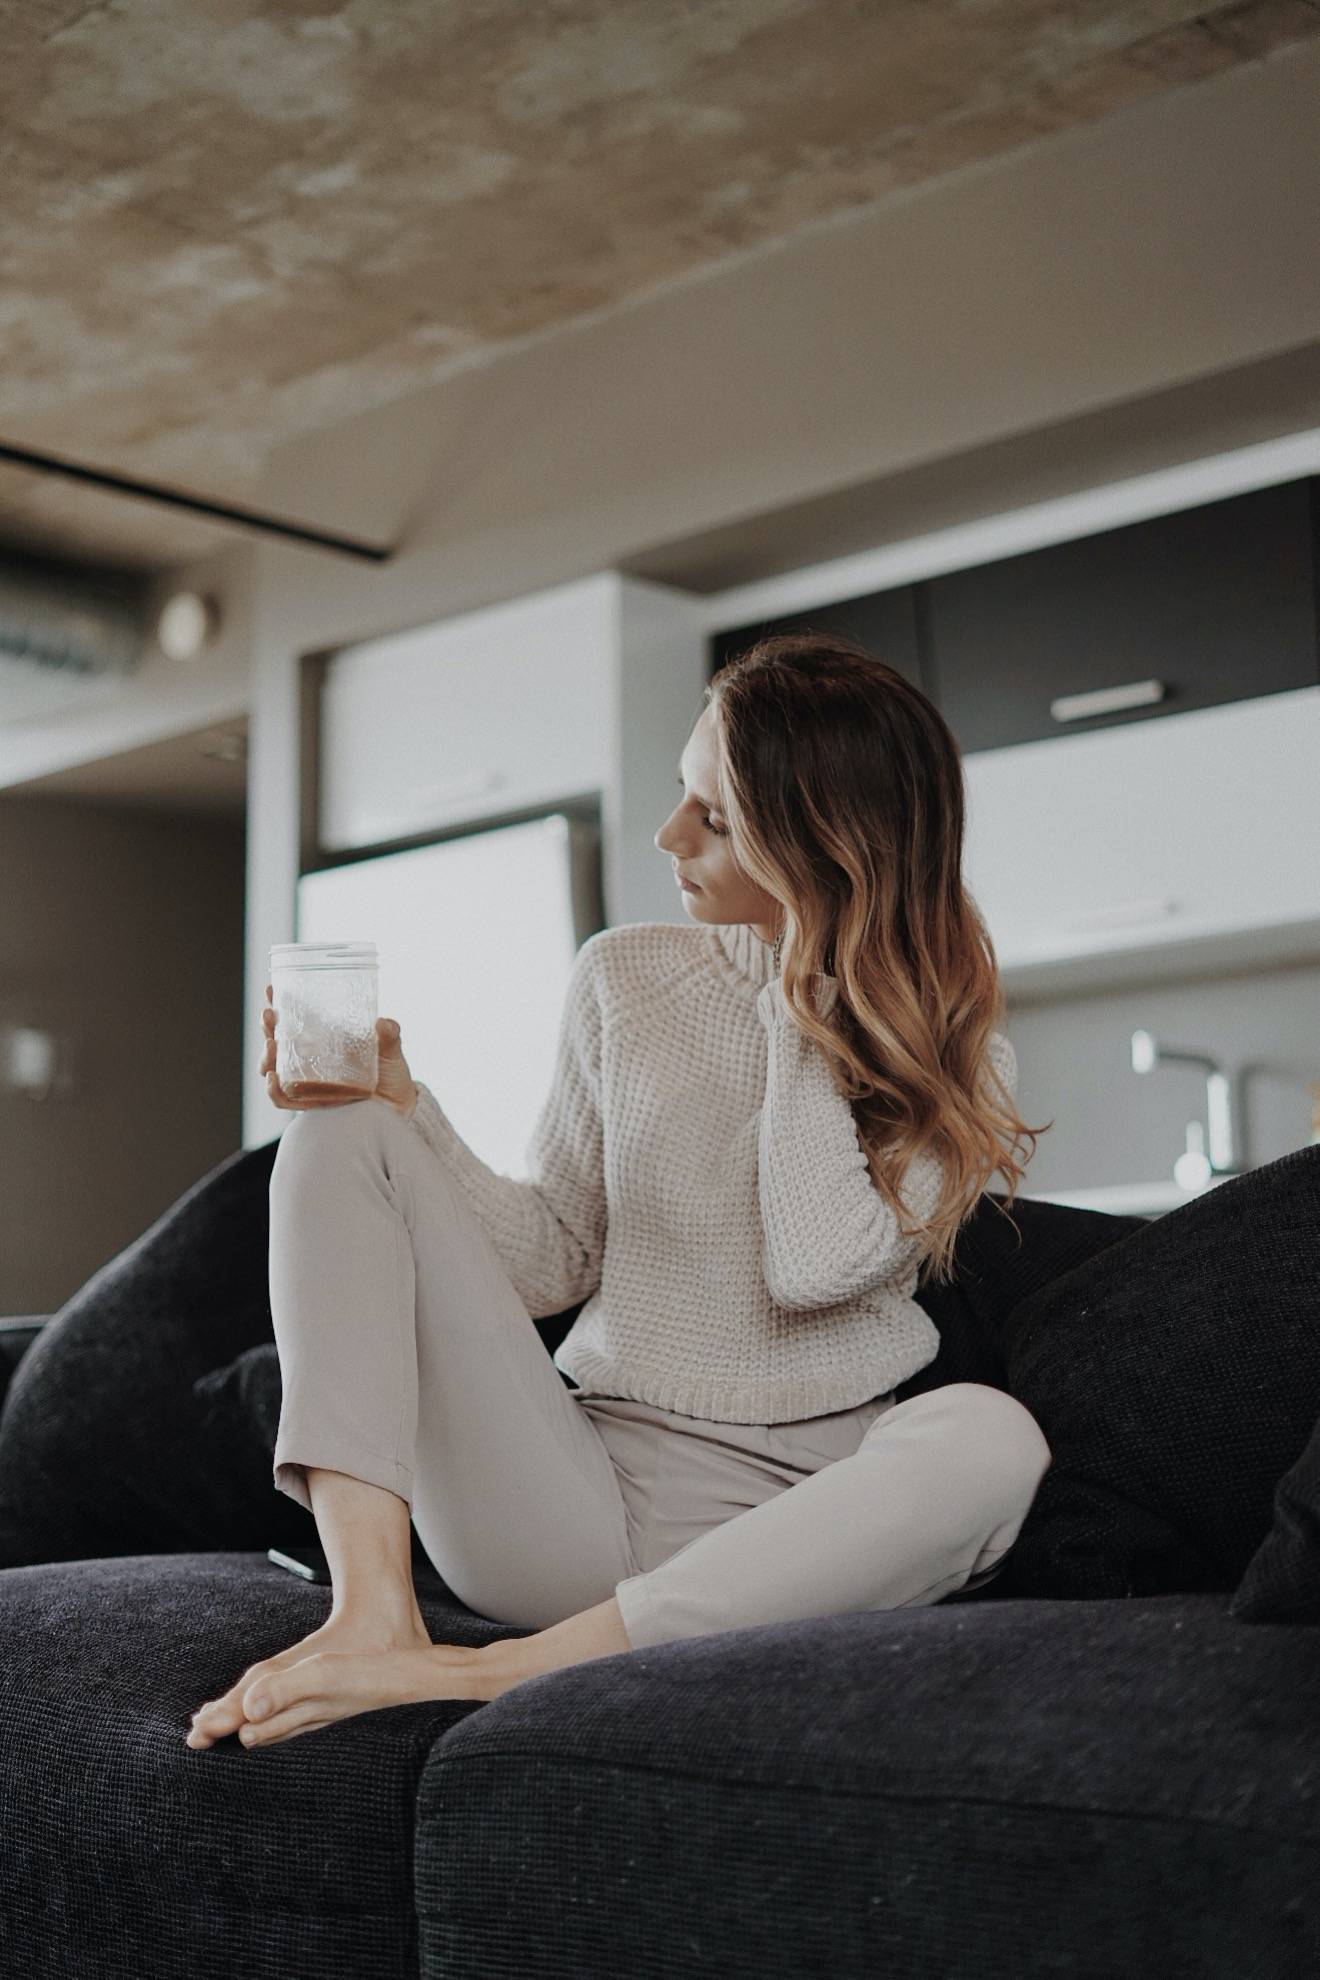 Woman sitting on a black couch drinking coffee